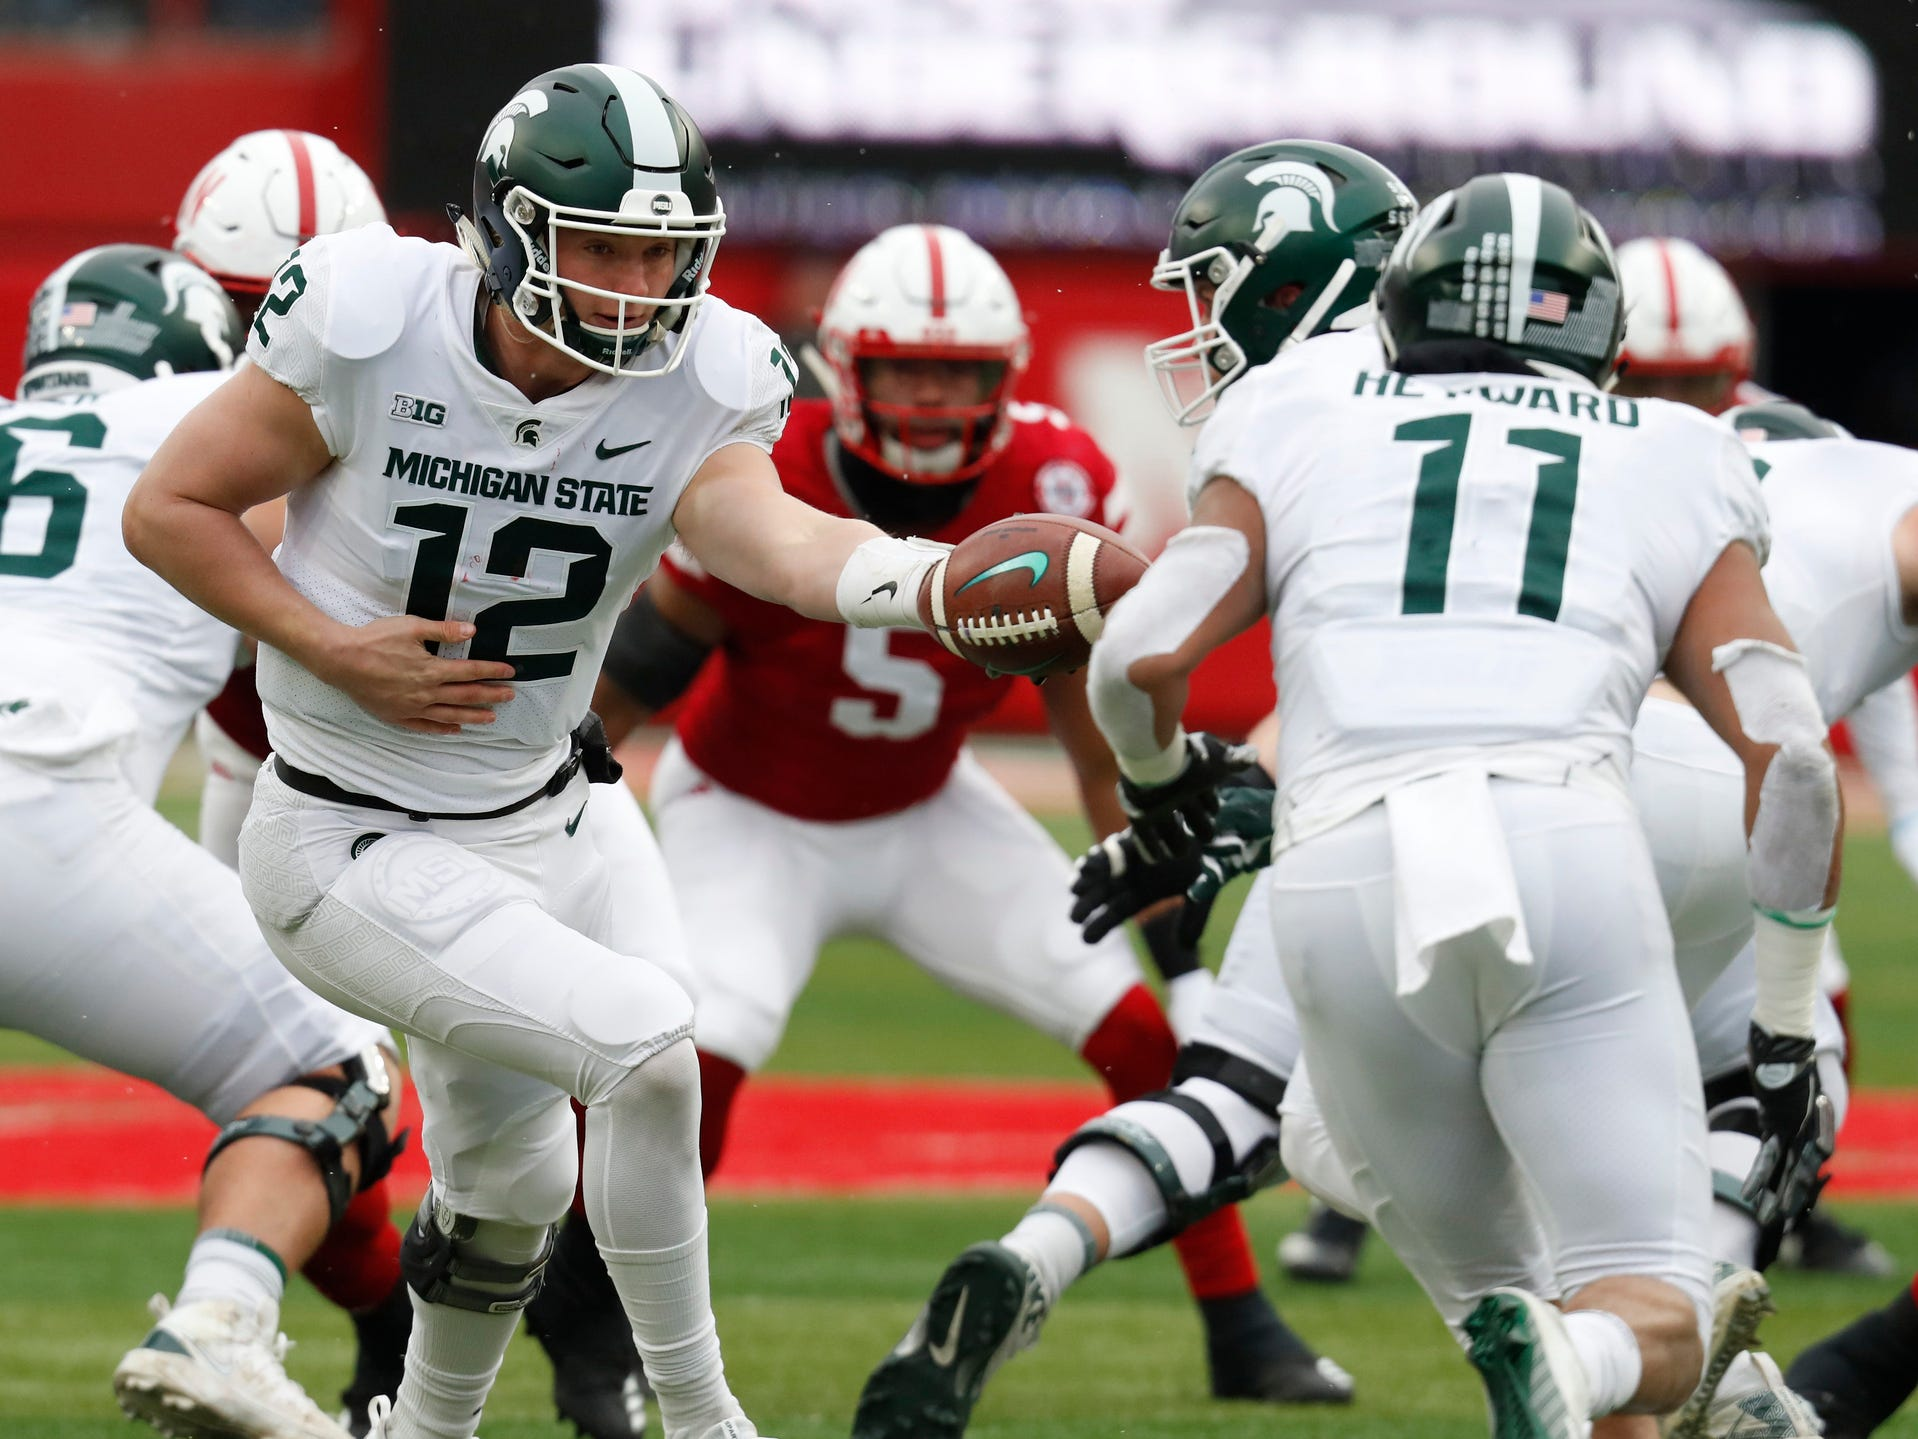 Michigan State quarterback Rocky Lombardi hands off to running back Connor Heyward during the game against Nebraska in the first half on Saturday, Nov. 17, 2018, in Lincoln, Neb.